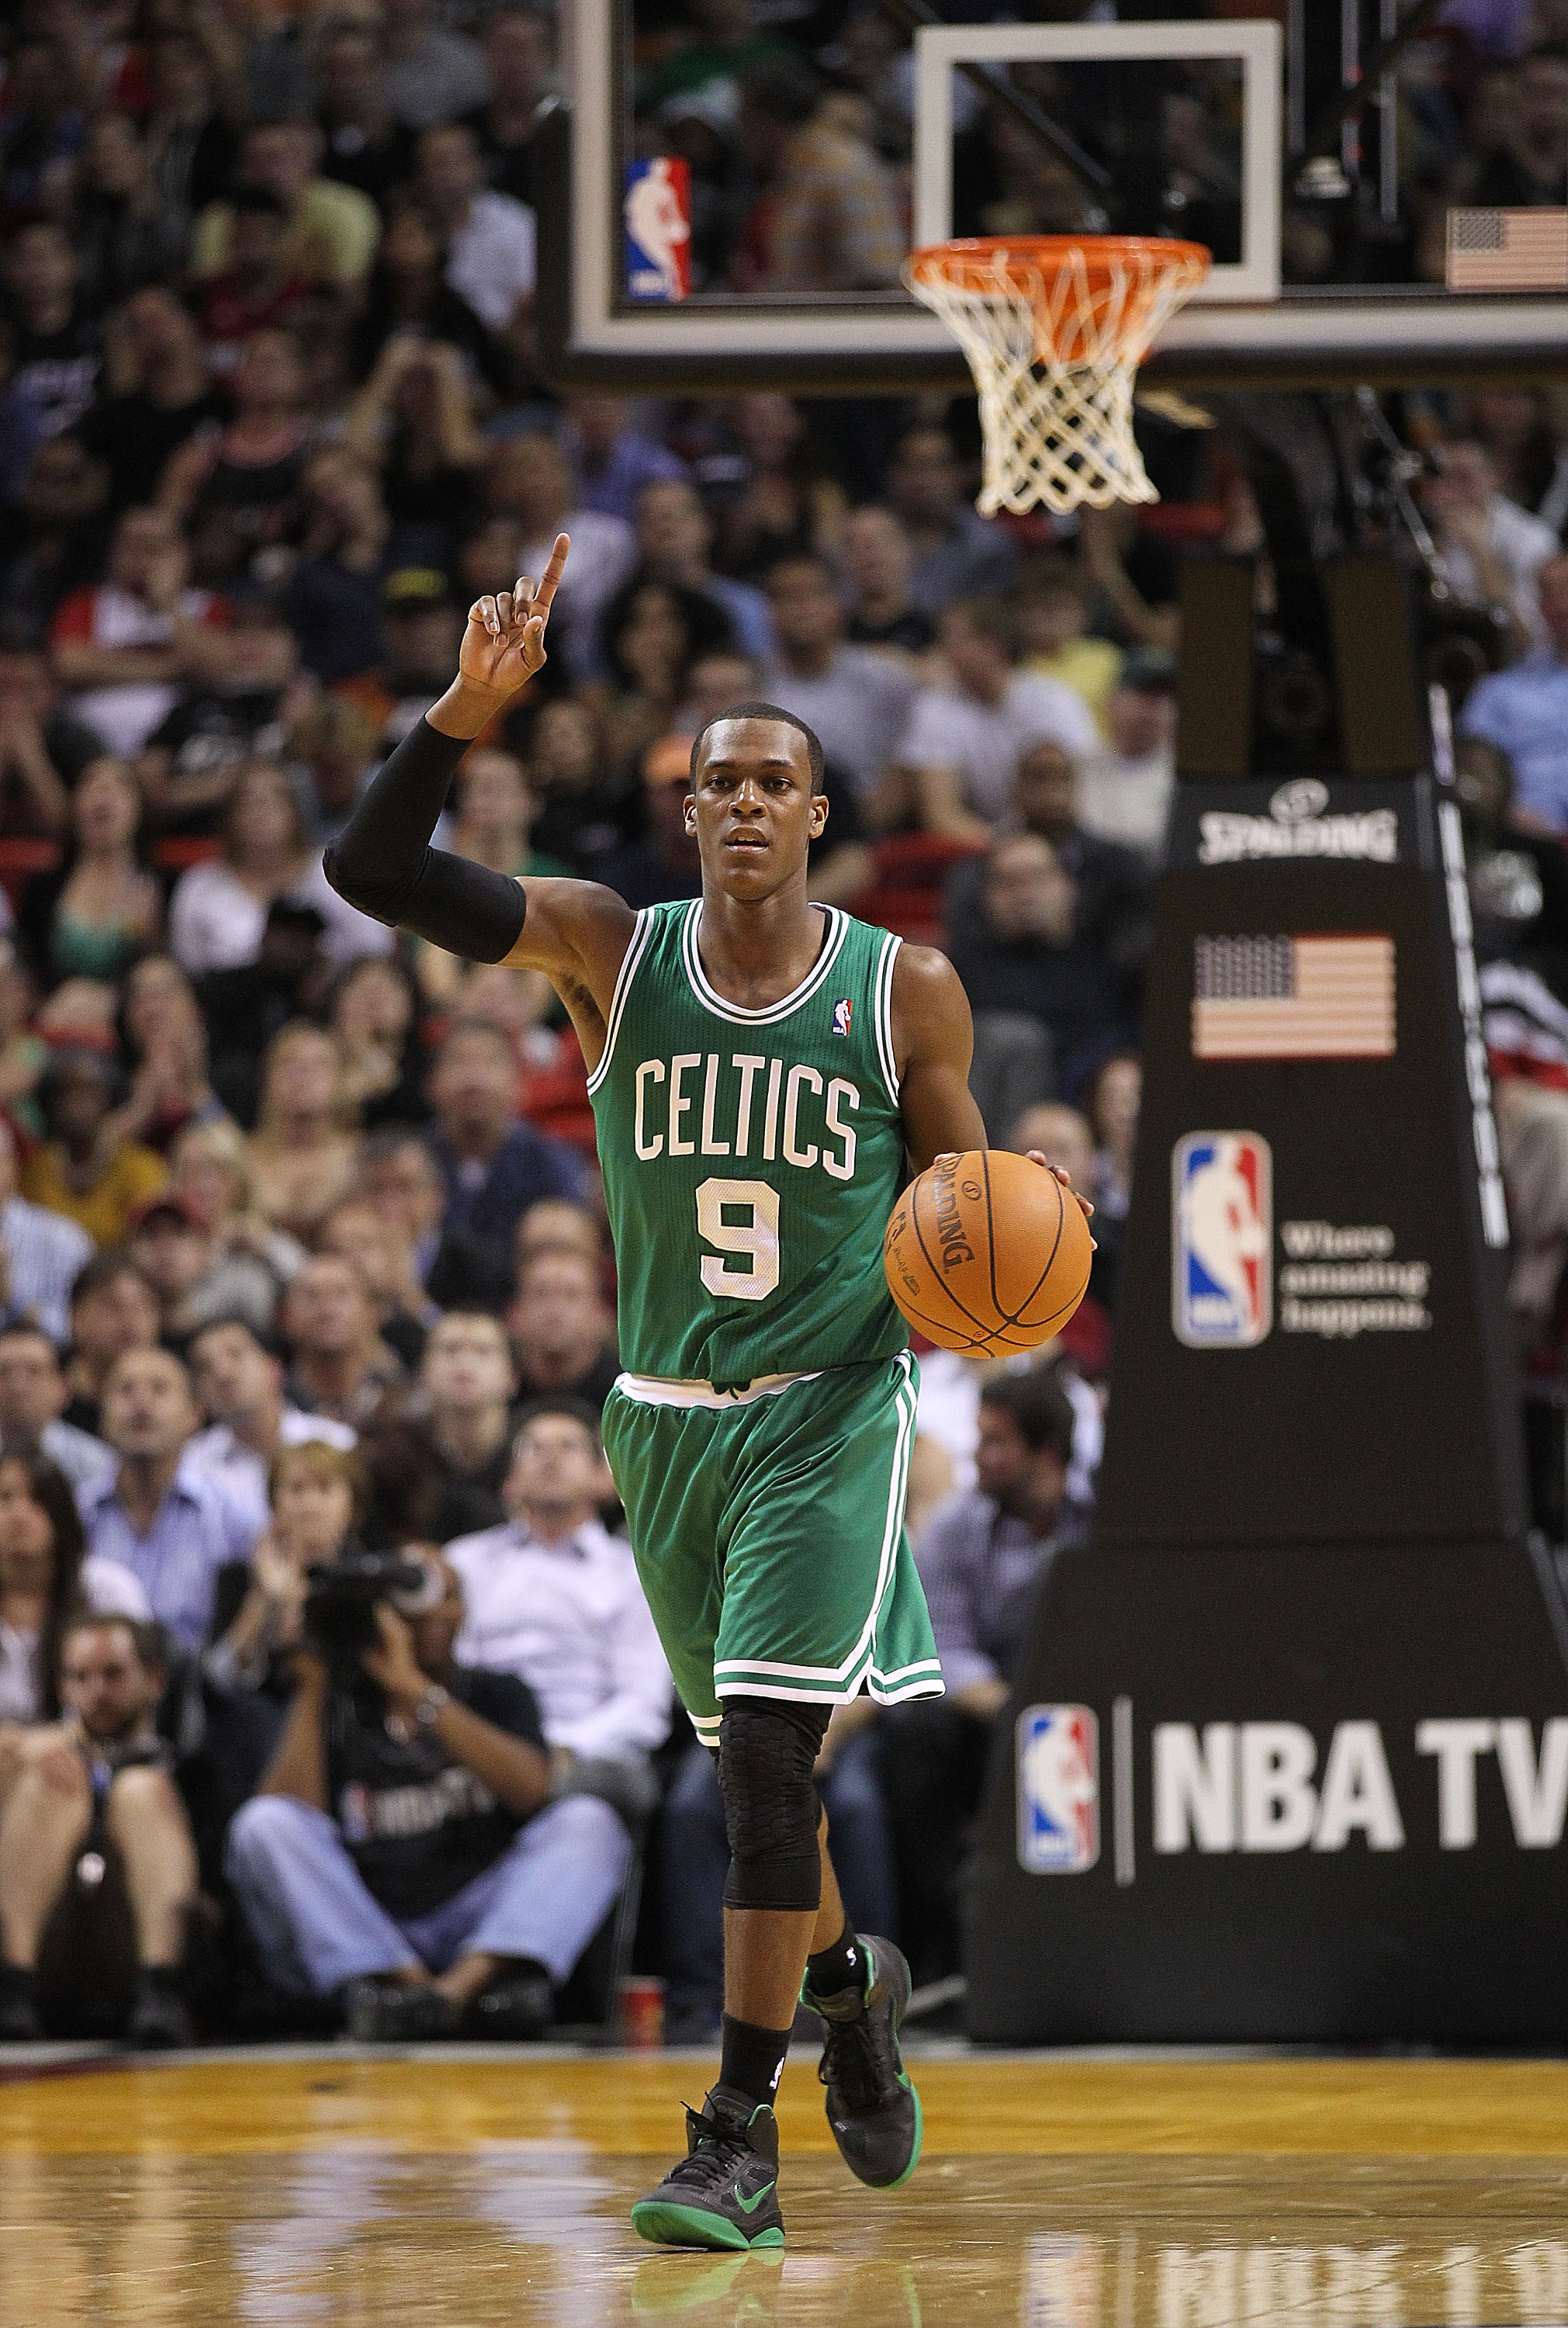 Rondo is the second best of the Big Four